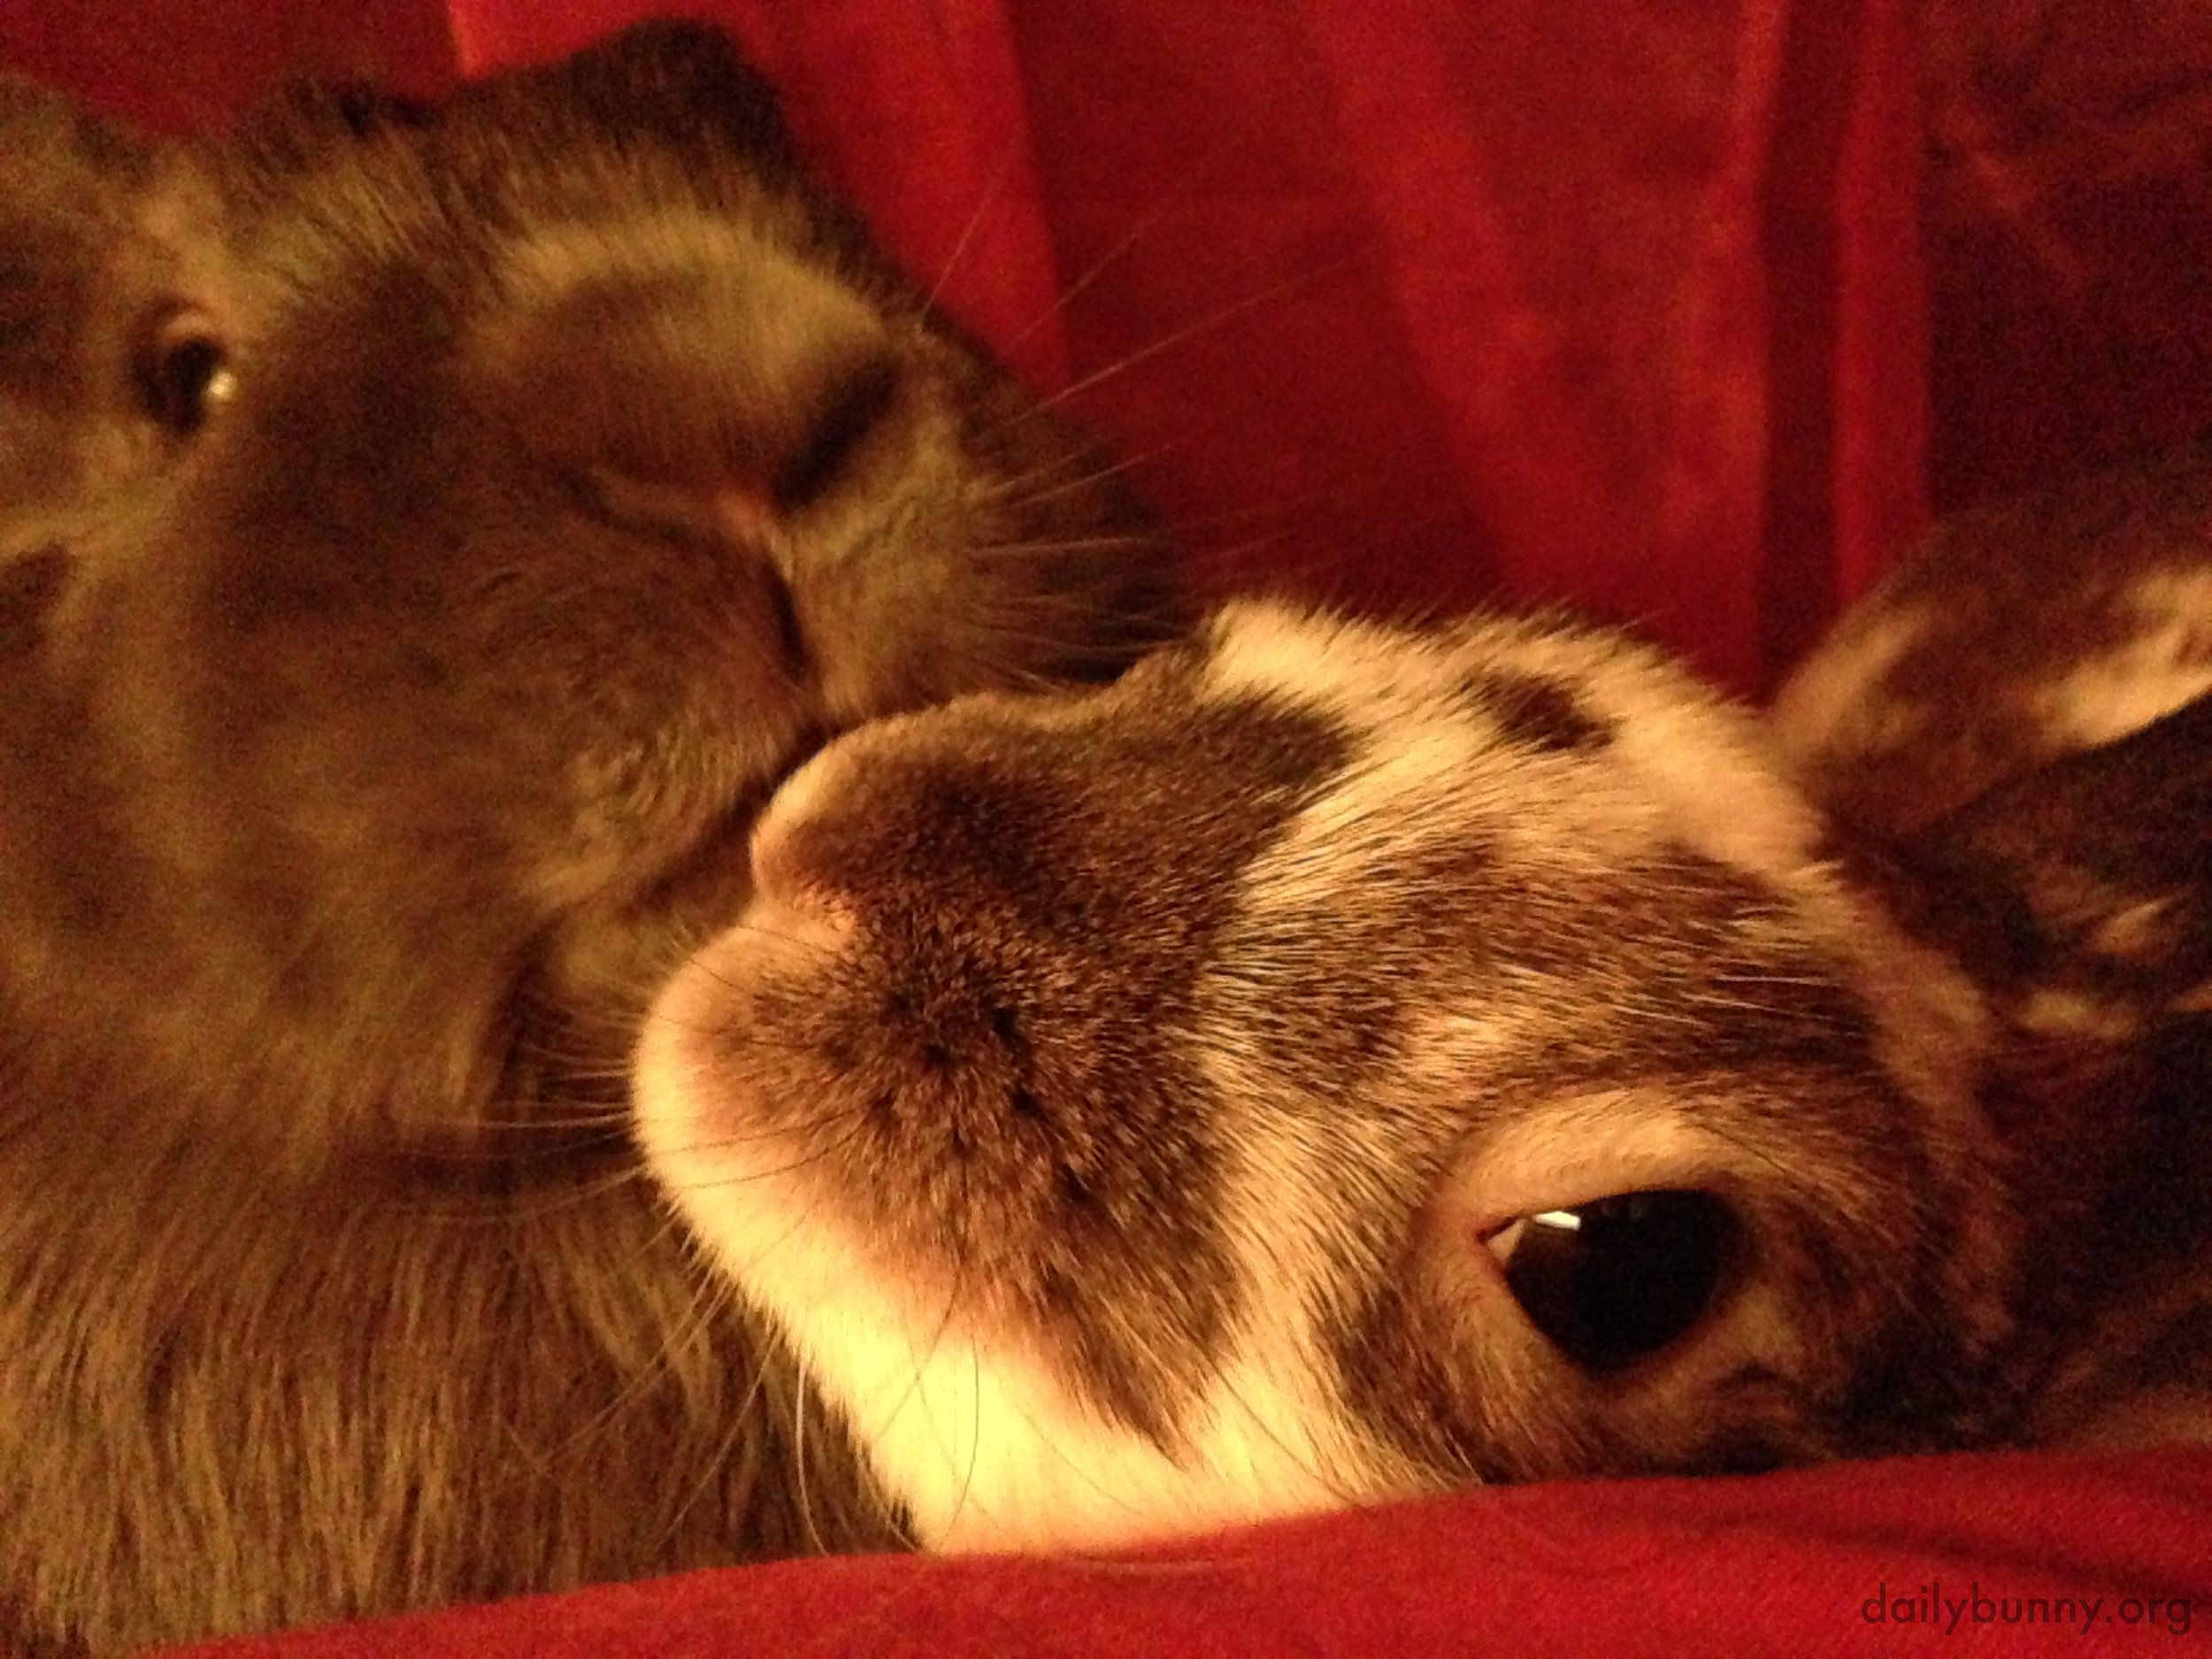 Bunnies Have a Quick Kiss for the Camera